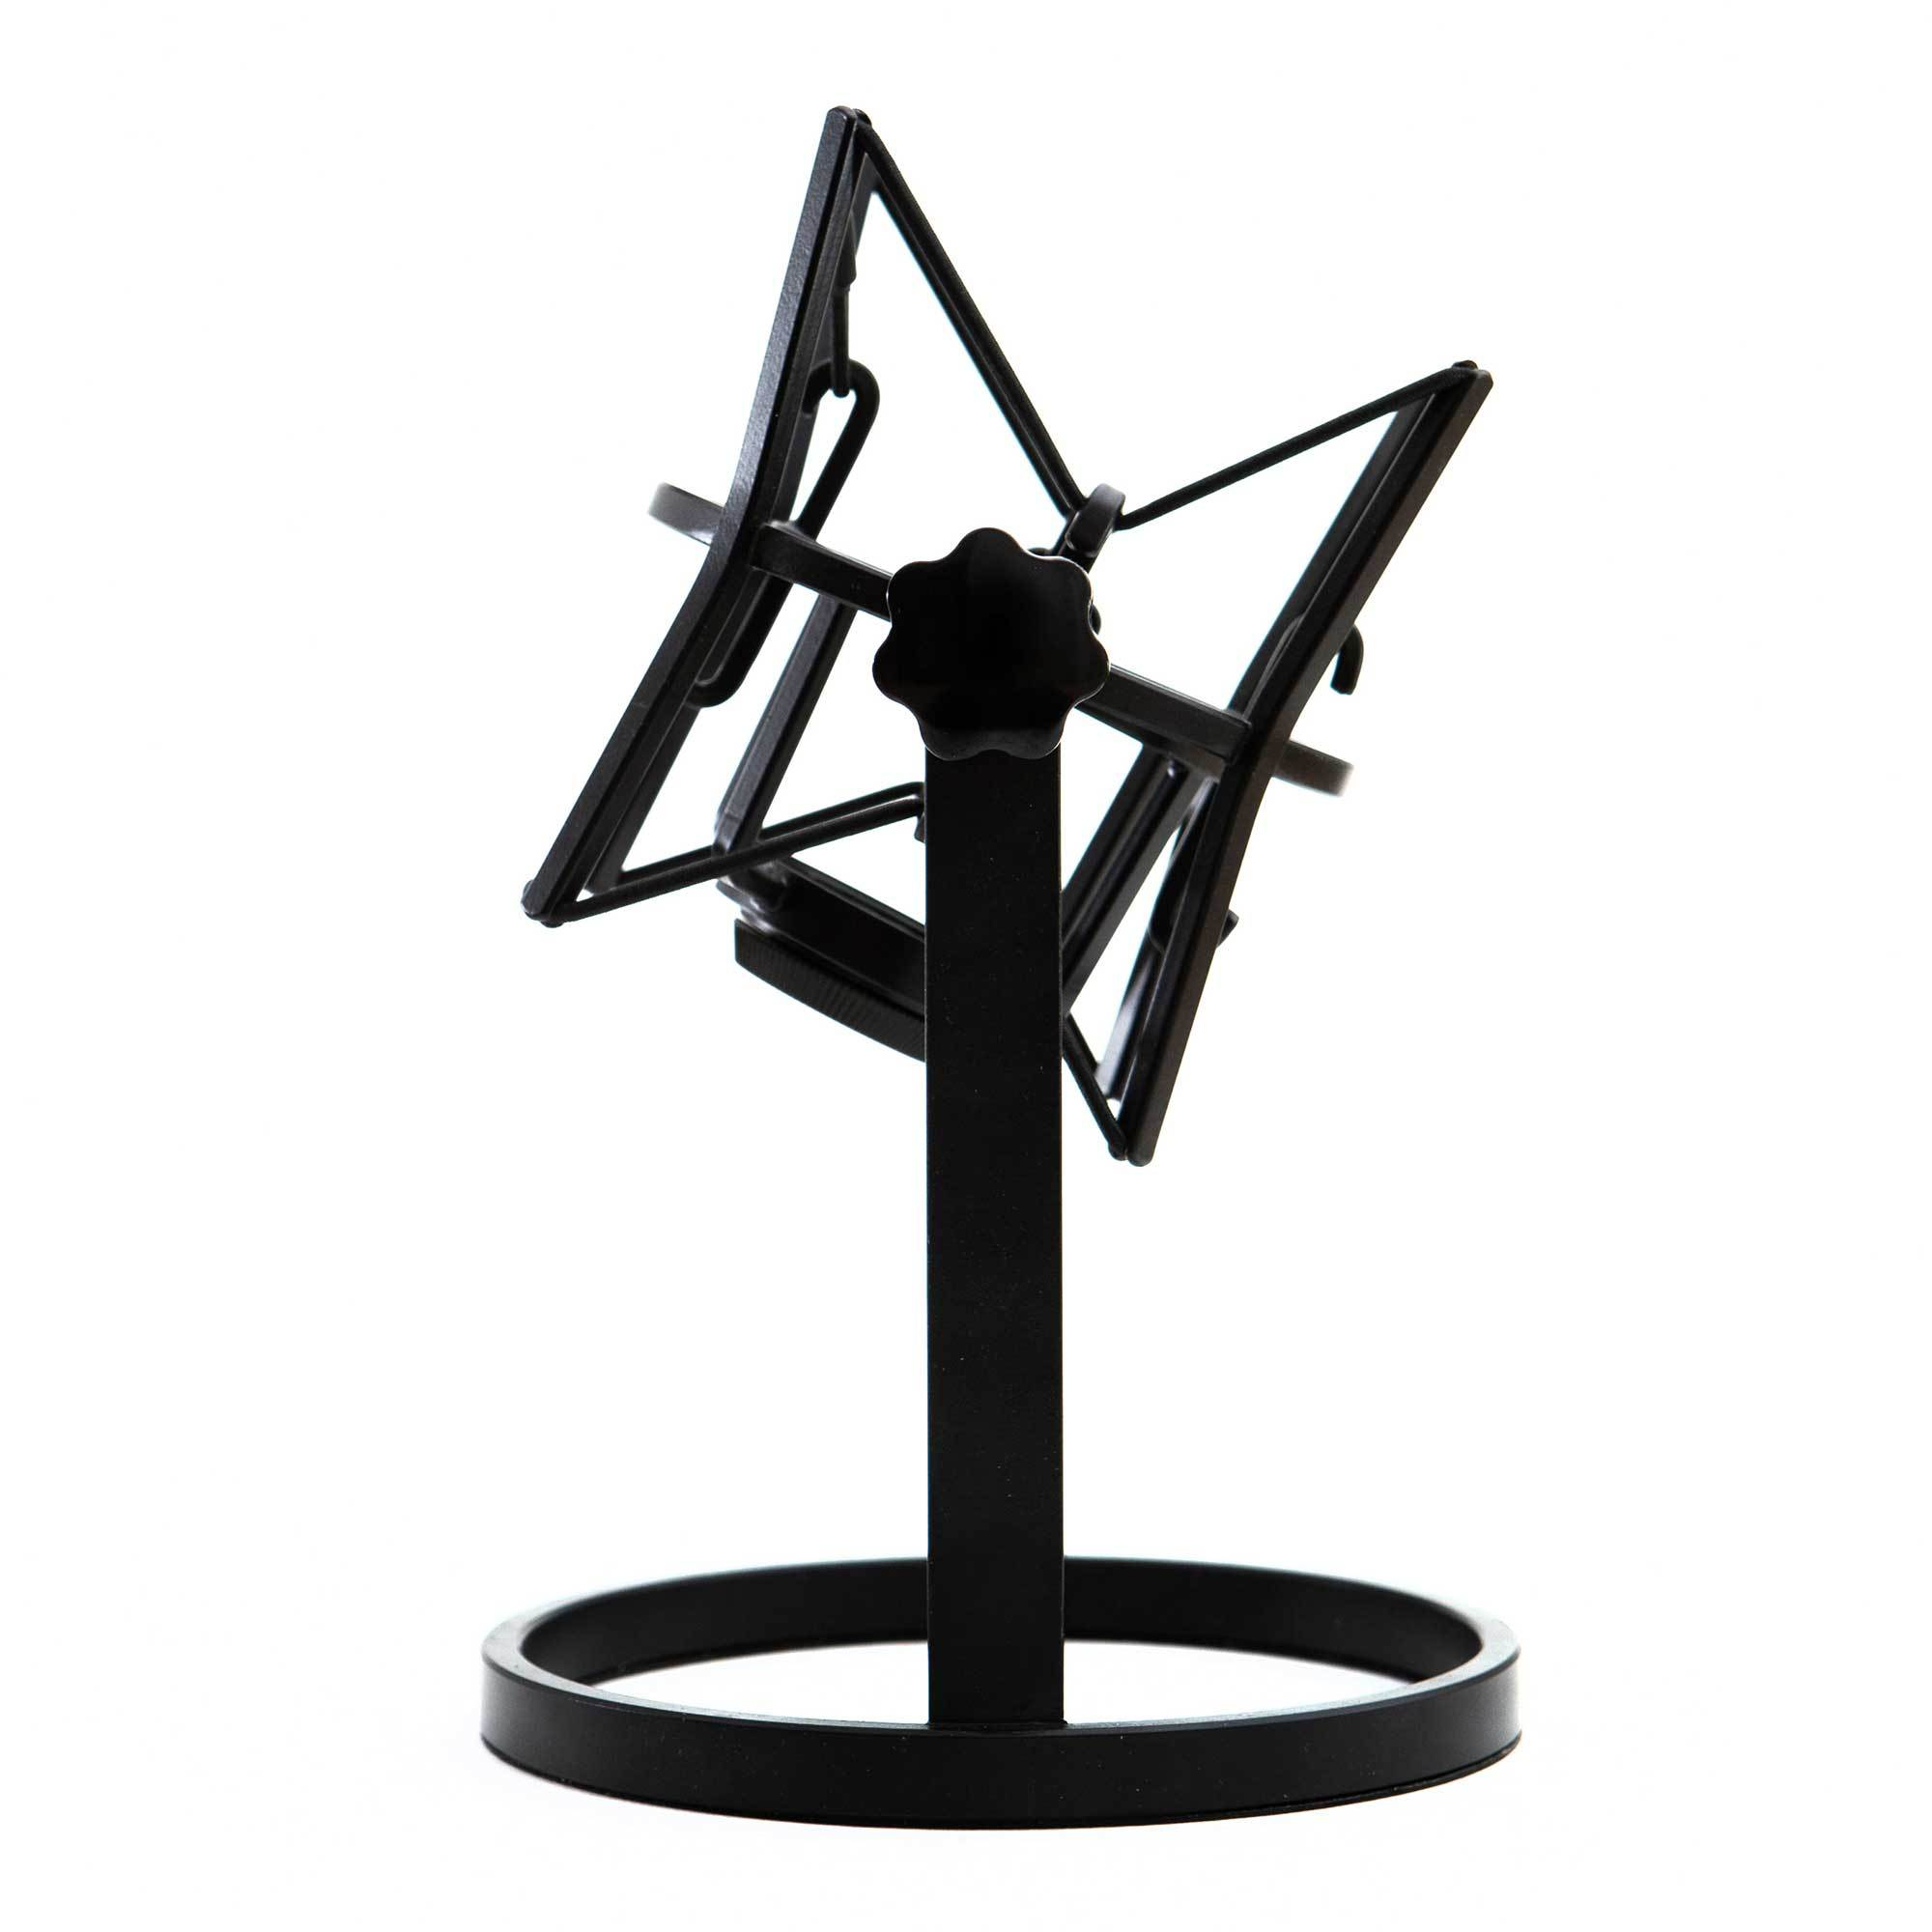 Desk Microphone Stand with Shock Mount